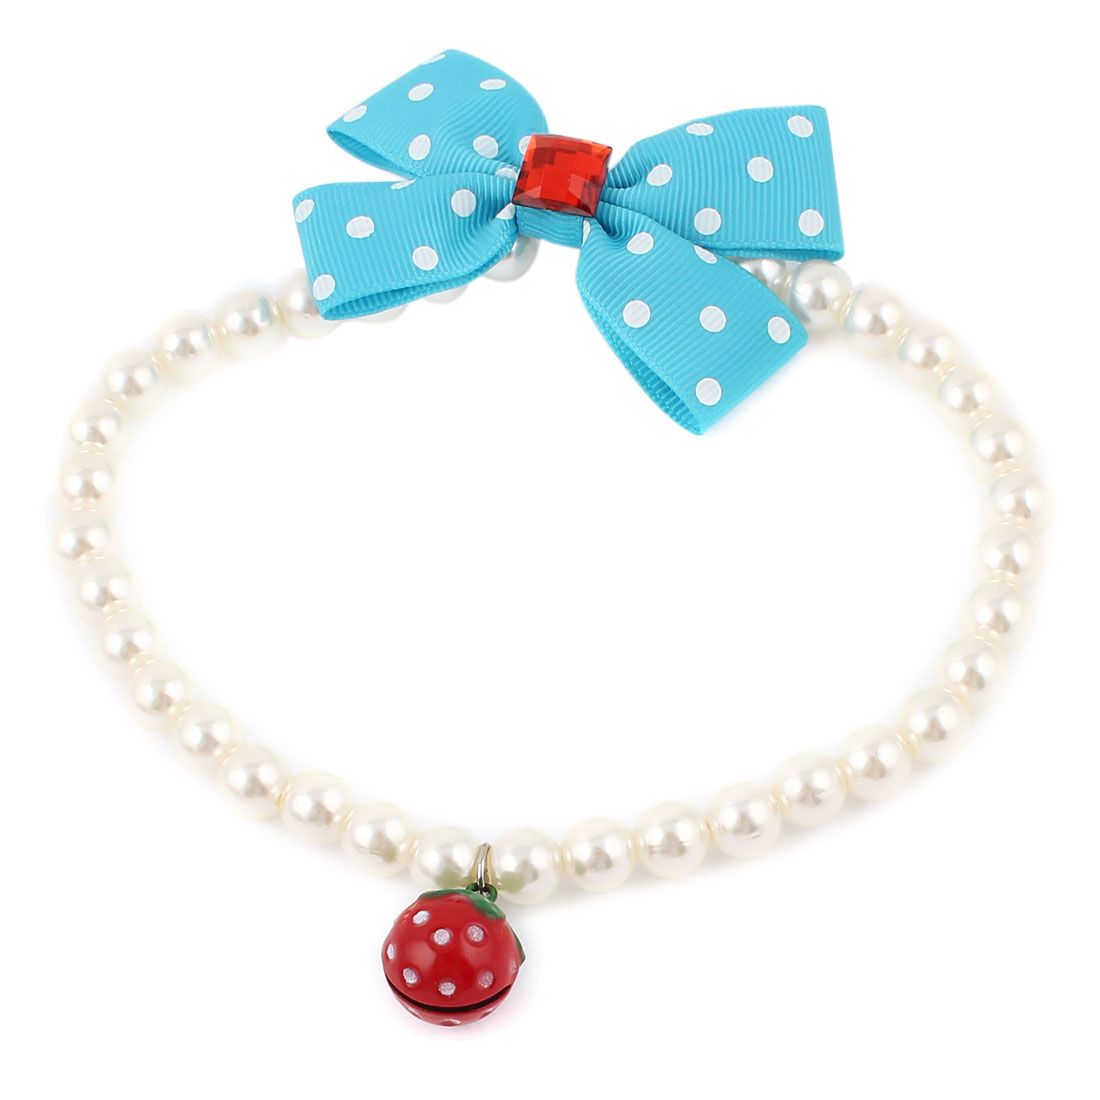 Strawberry Bell Pendant Bowknot Accent Pet Dog Plastic Beads Imitation Pearls Collar Necklace White Blue L